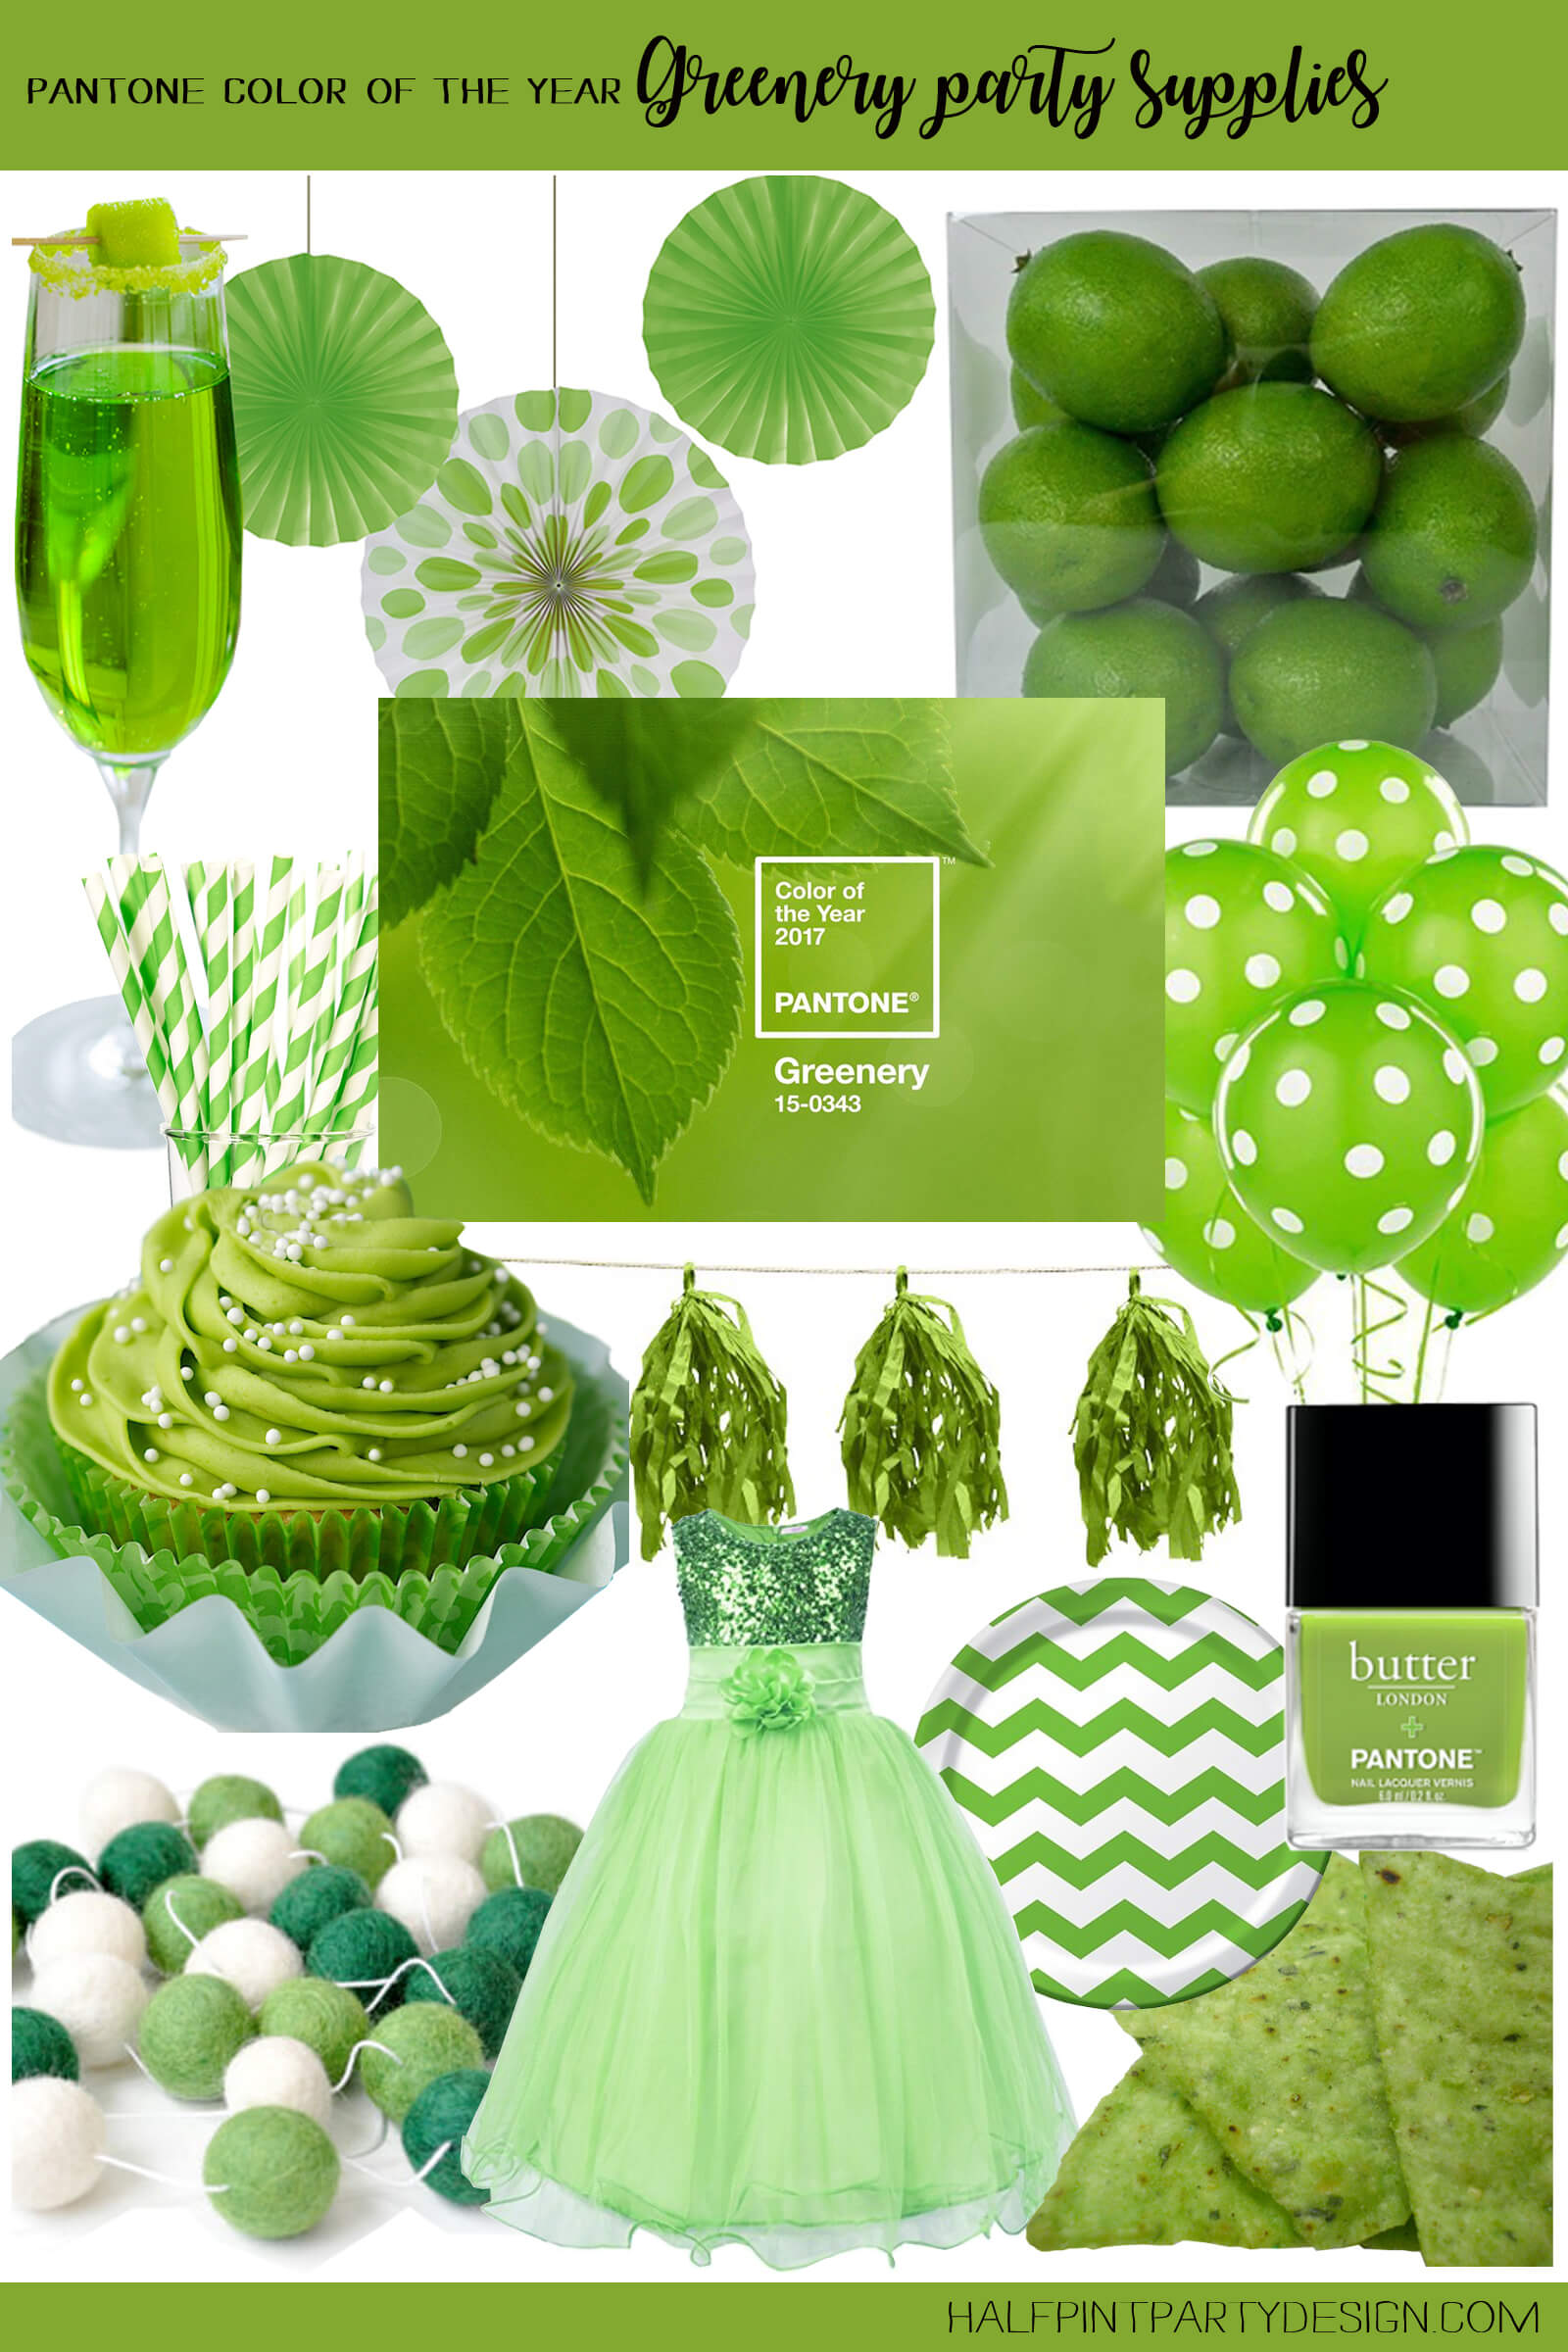 Green party supplies | Halfpint Design - I love all these green party items. Makes a great St. Patrick's Day party or a fun addition to a Dinosaur party, Princess and the Frog party, reptile party, etc.